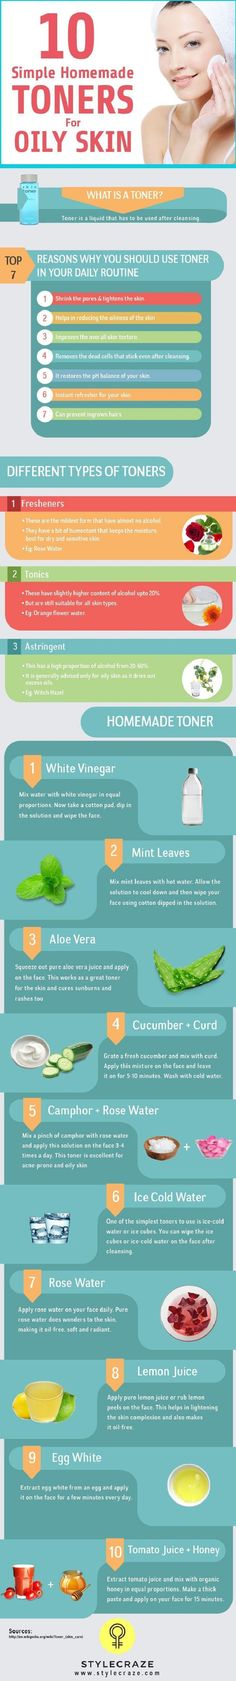 10 Simple Homemade Toners For Oily Skin - 15 Very Best Oily Skin Tips and DIYs | GleamItUp #moisturizerforoilyskin